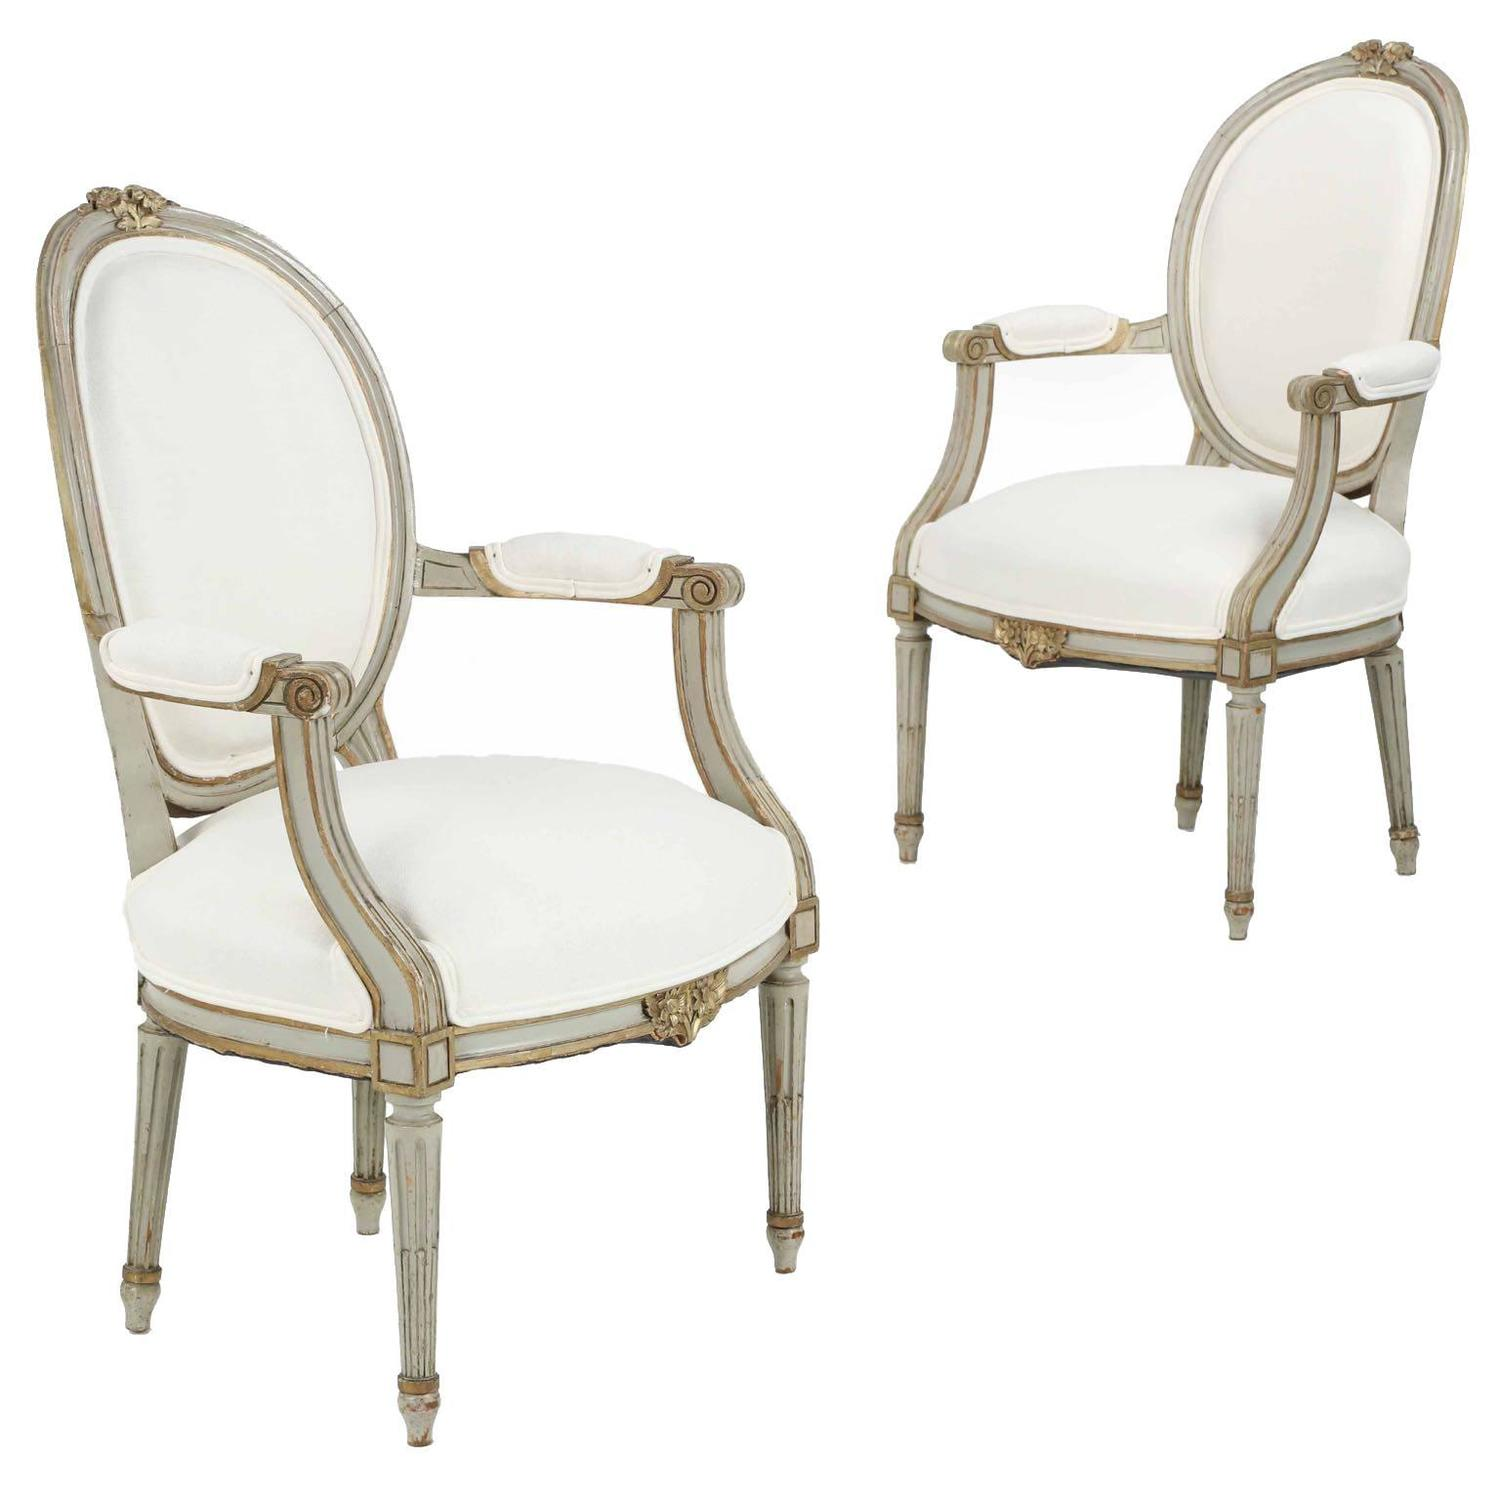 pair of french louis xvi style painted antique fauteuil armchairs at 1stdibs. Black Bedroom Furniture Sets. Home Design Ideas